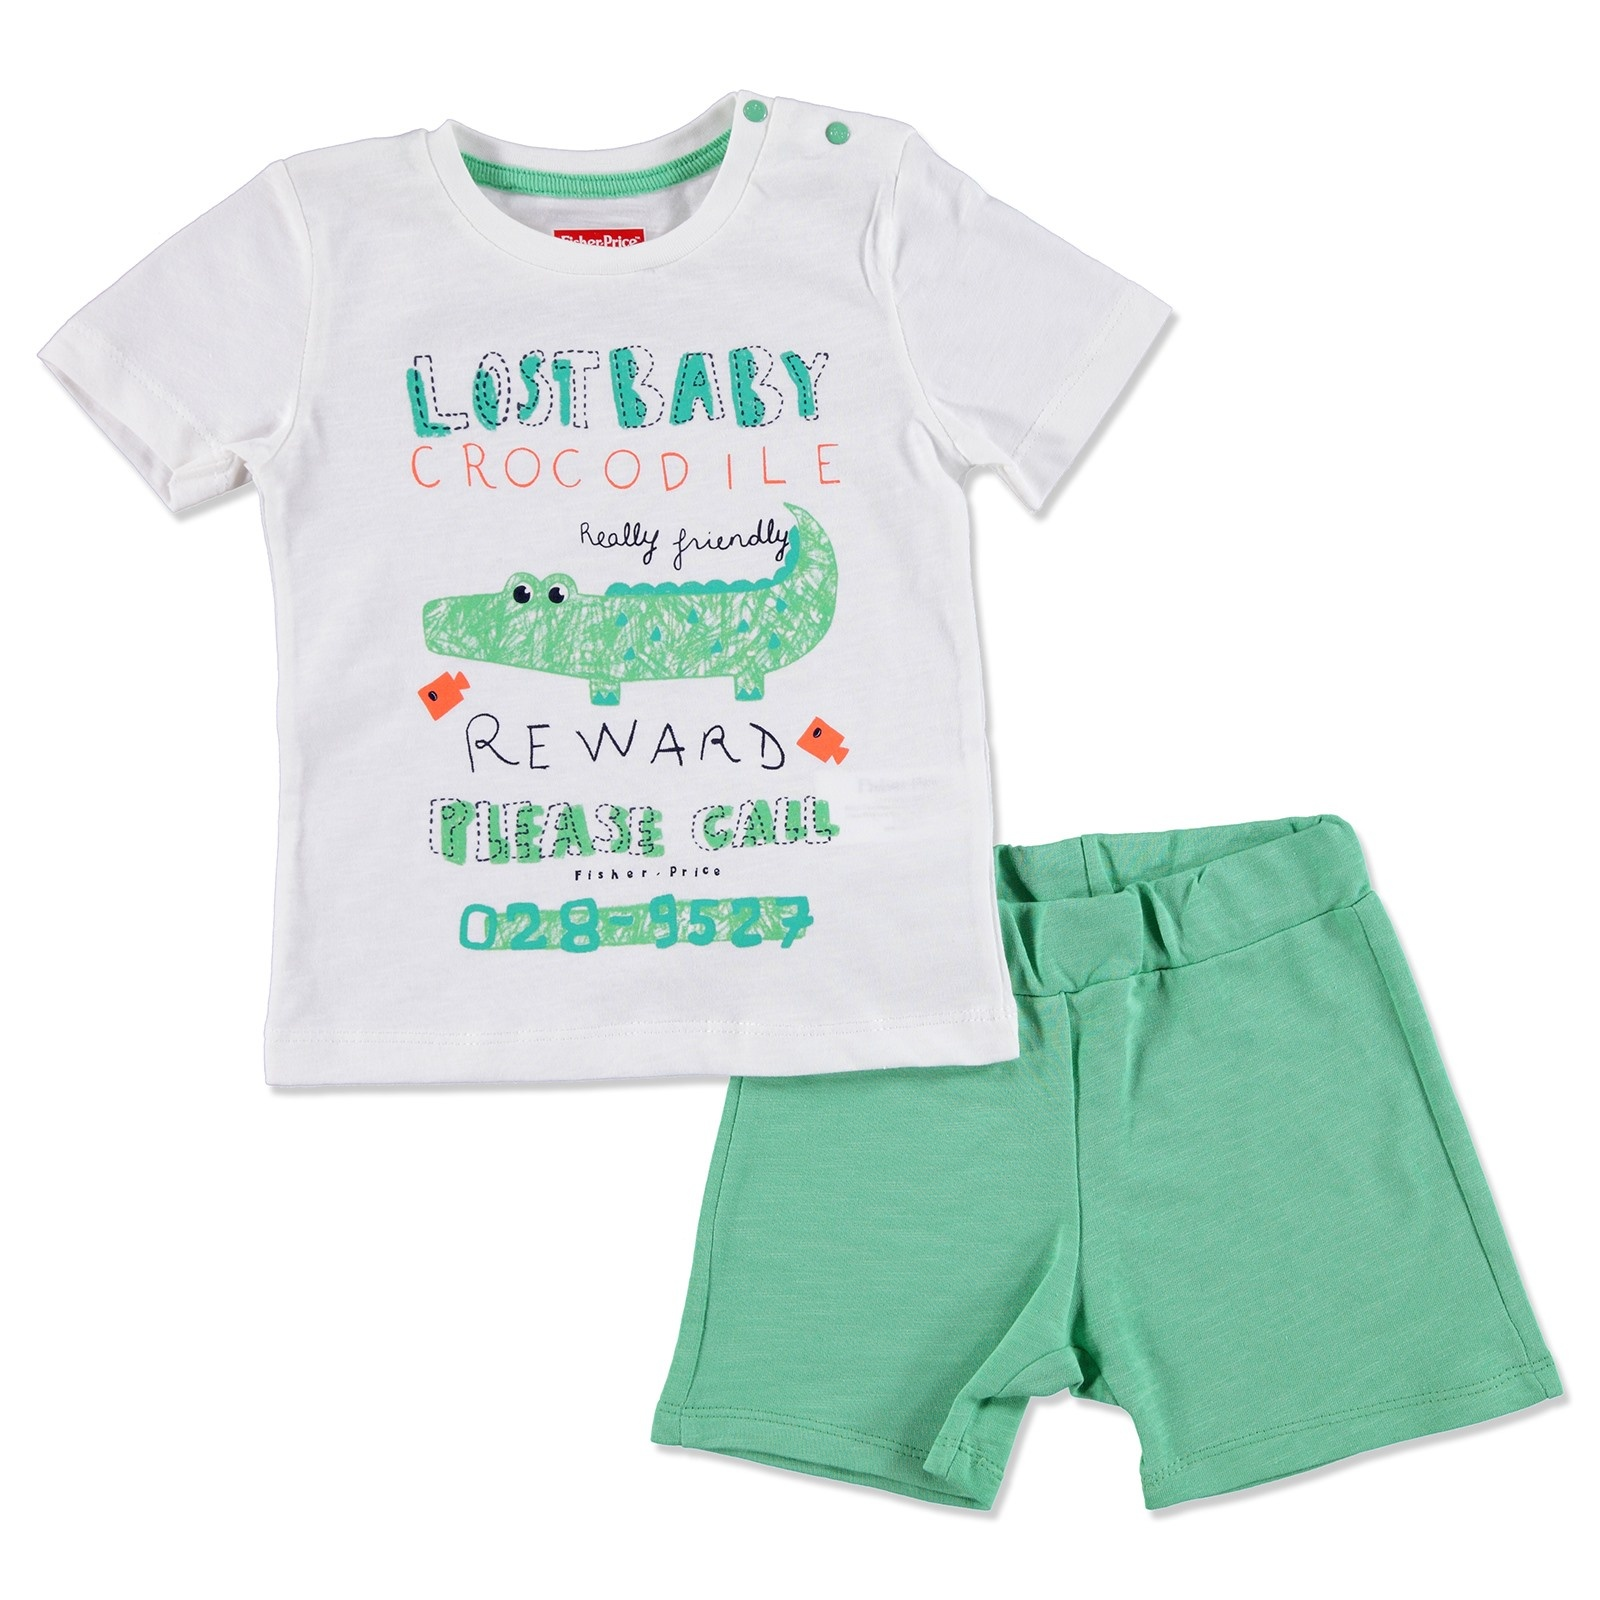 Ebebek Fisher Price Summer Baby Boy Crocodile T-shirt Short Set